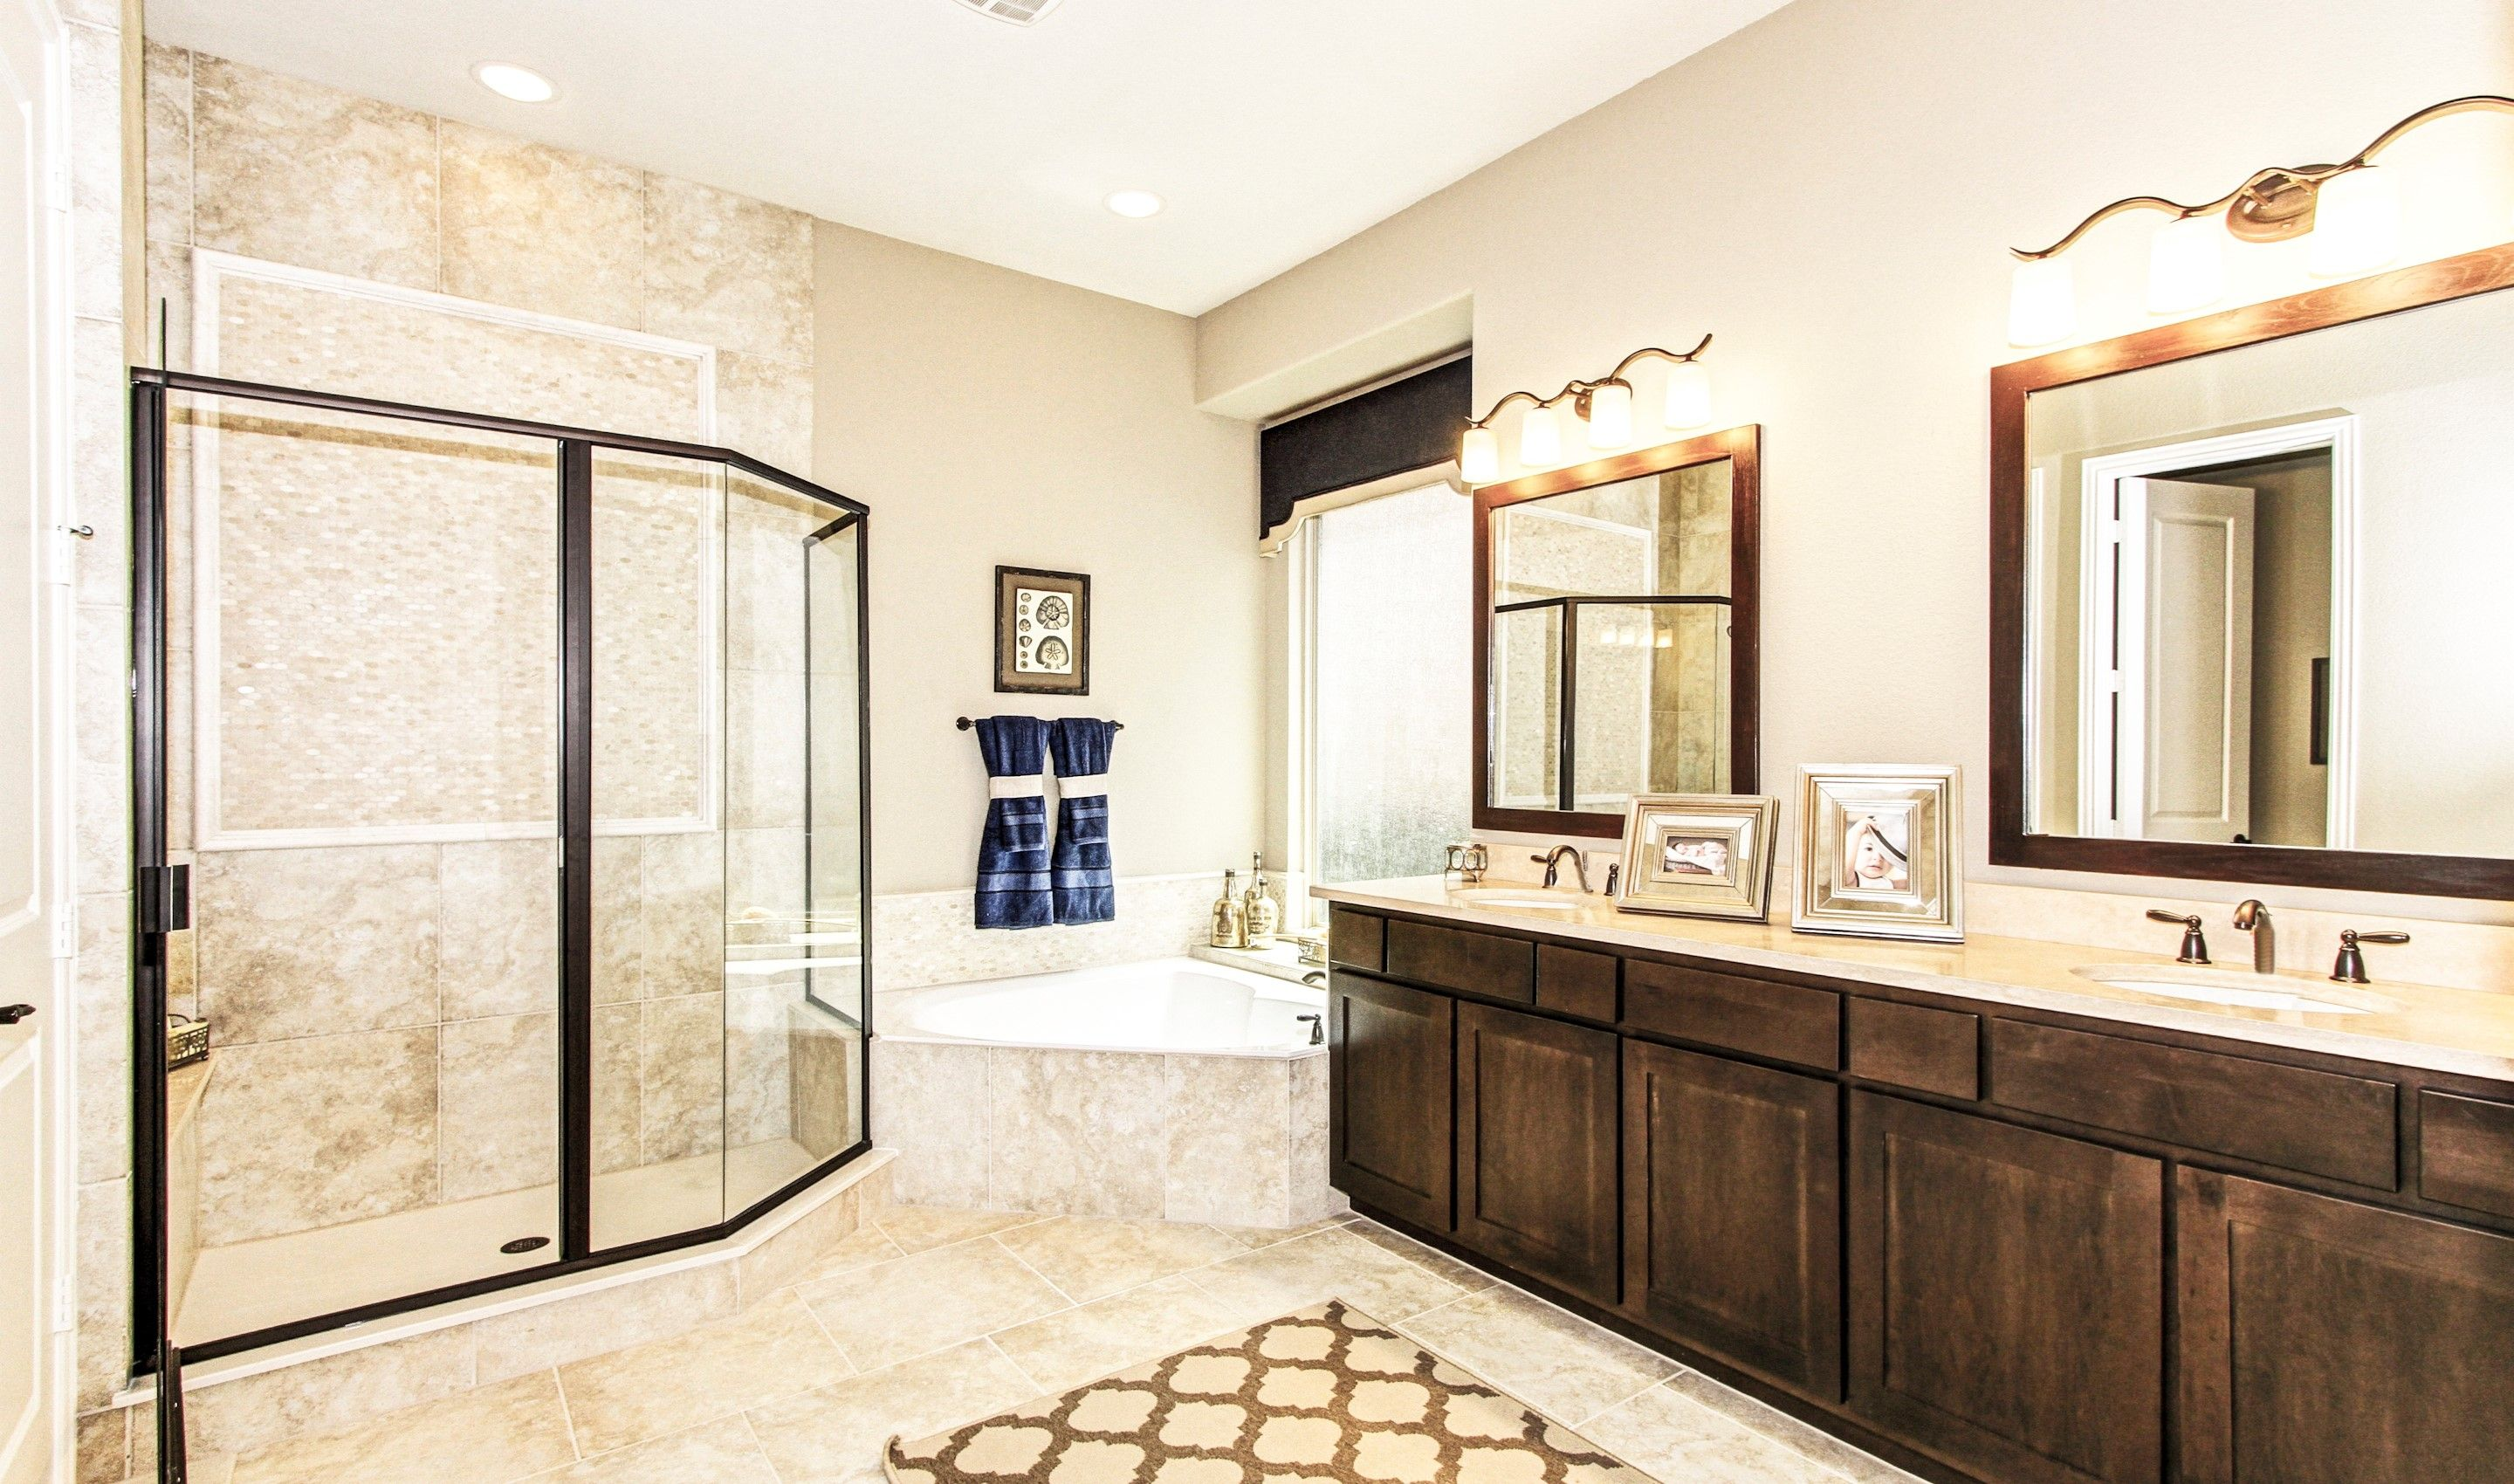 Single Family for Sale at Summerwood Iii 1404 Fort Davis Drive, Homesite C-20 Euless, Texas 76039 United States